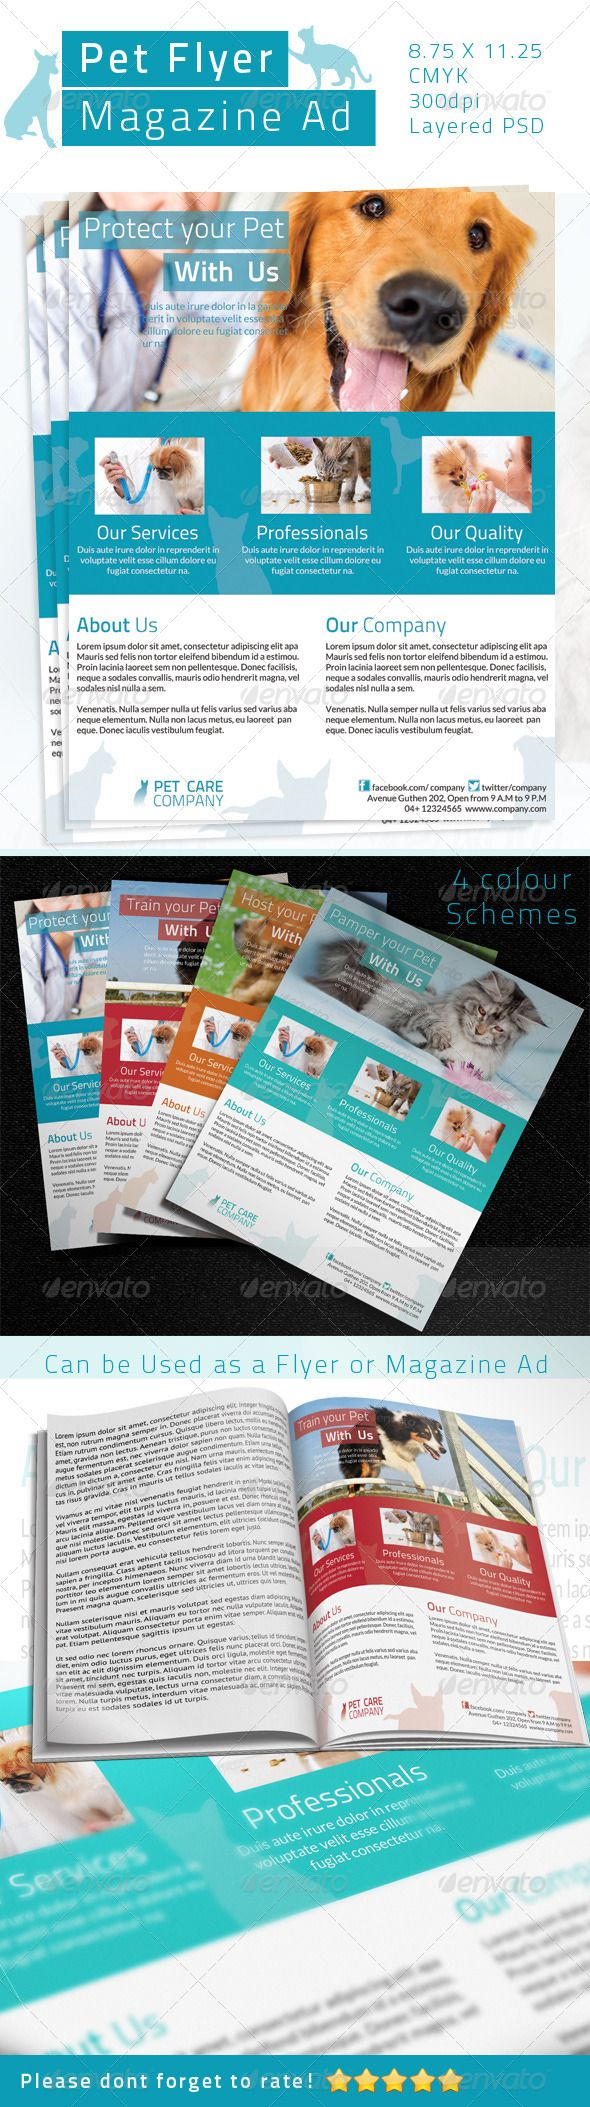 Pet Care Flyer / Magazine Ad   #GraphicRiver        Pet Care Flyer / Magazine Ad  It Can be used in any Business like Pet Care,Pet Shop,Veterinarian etc    CMYK Color profile  8.75 X 11.25  300 DPI  Easy to Edit  Organized layers  Ready to print  Free Fonts  4 color schemes